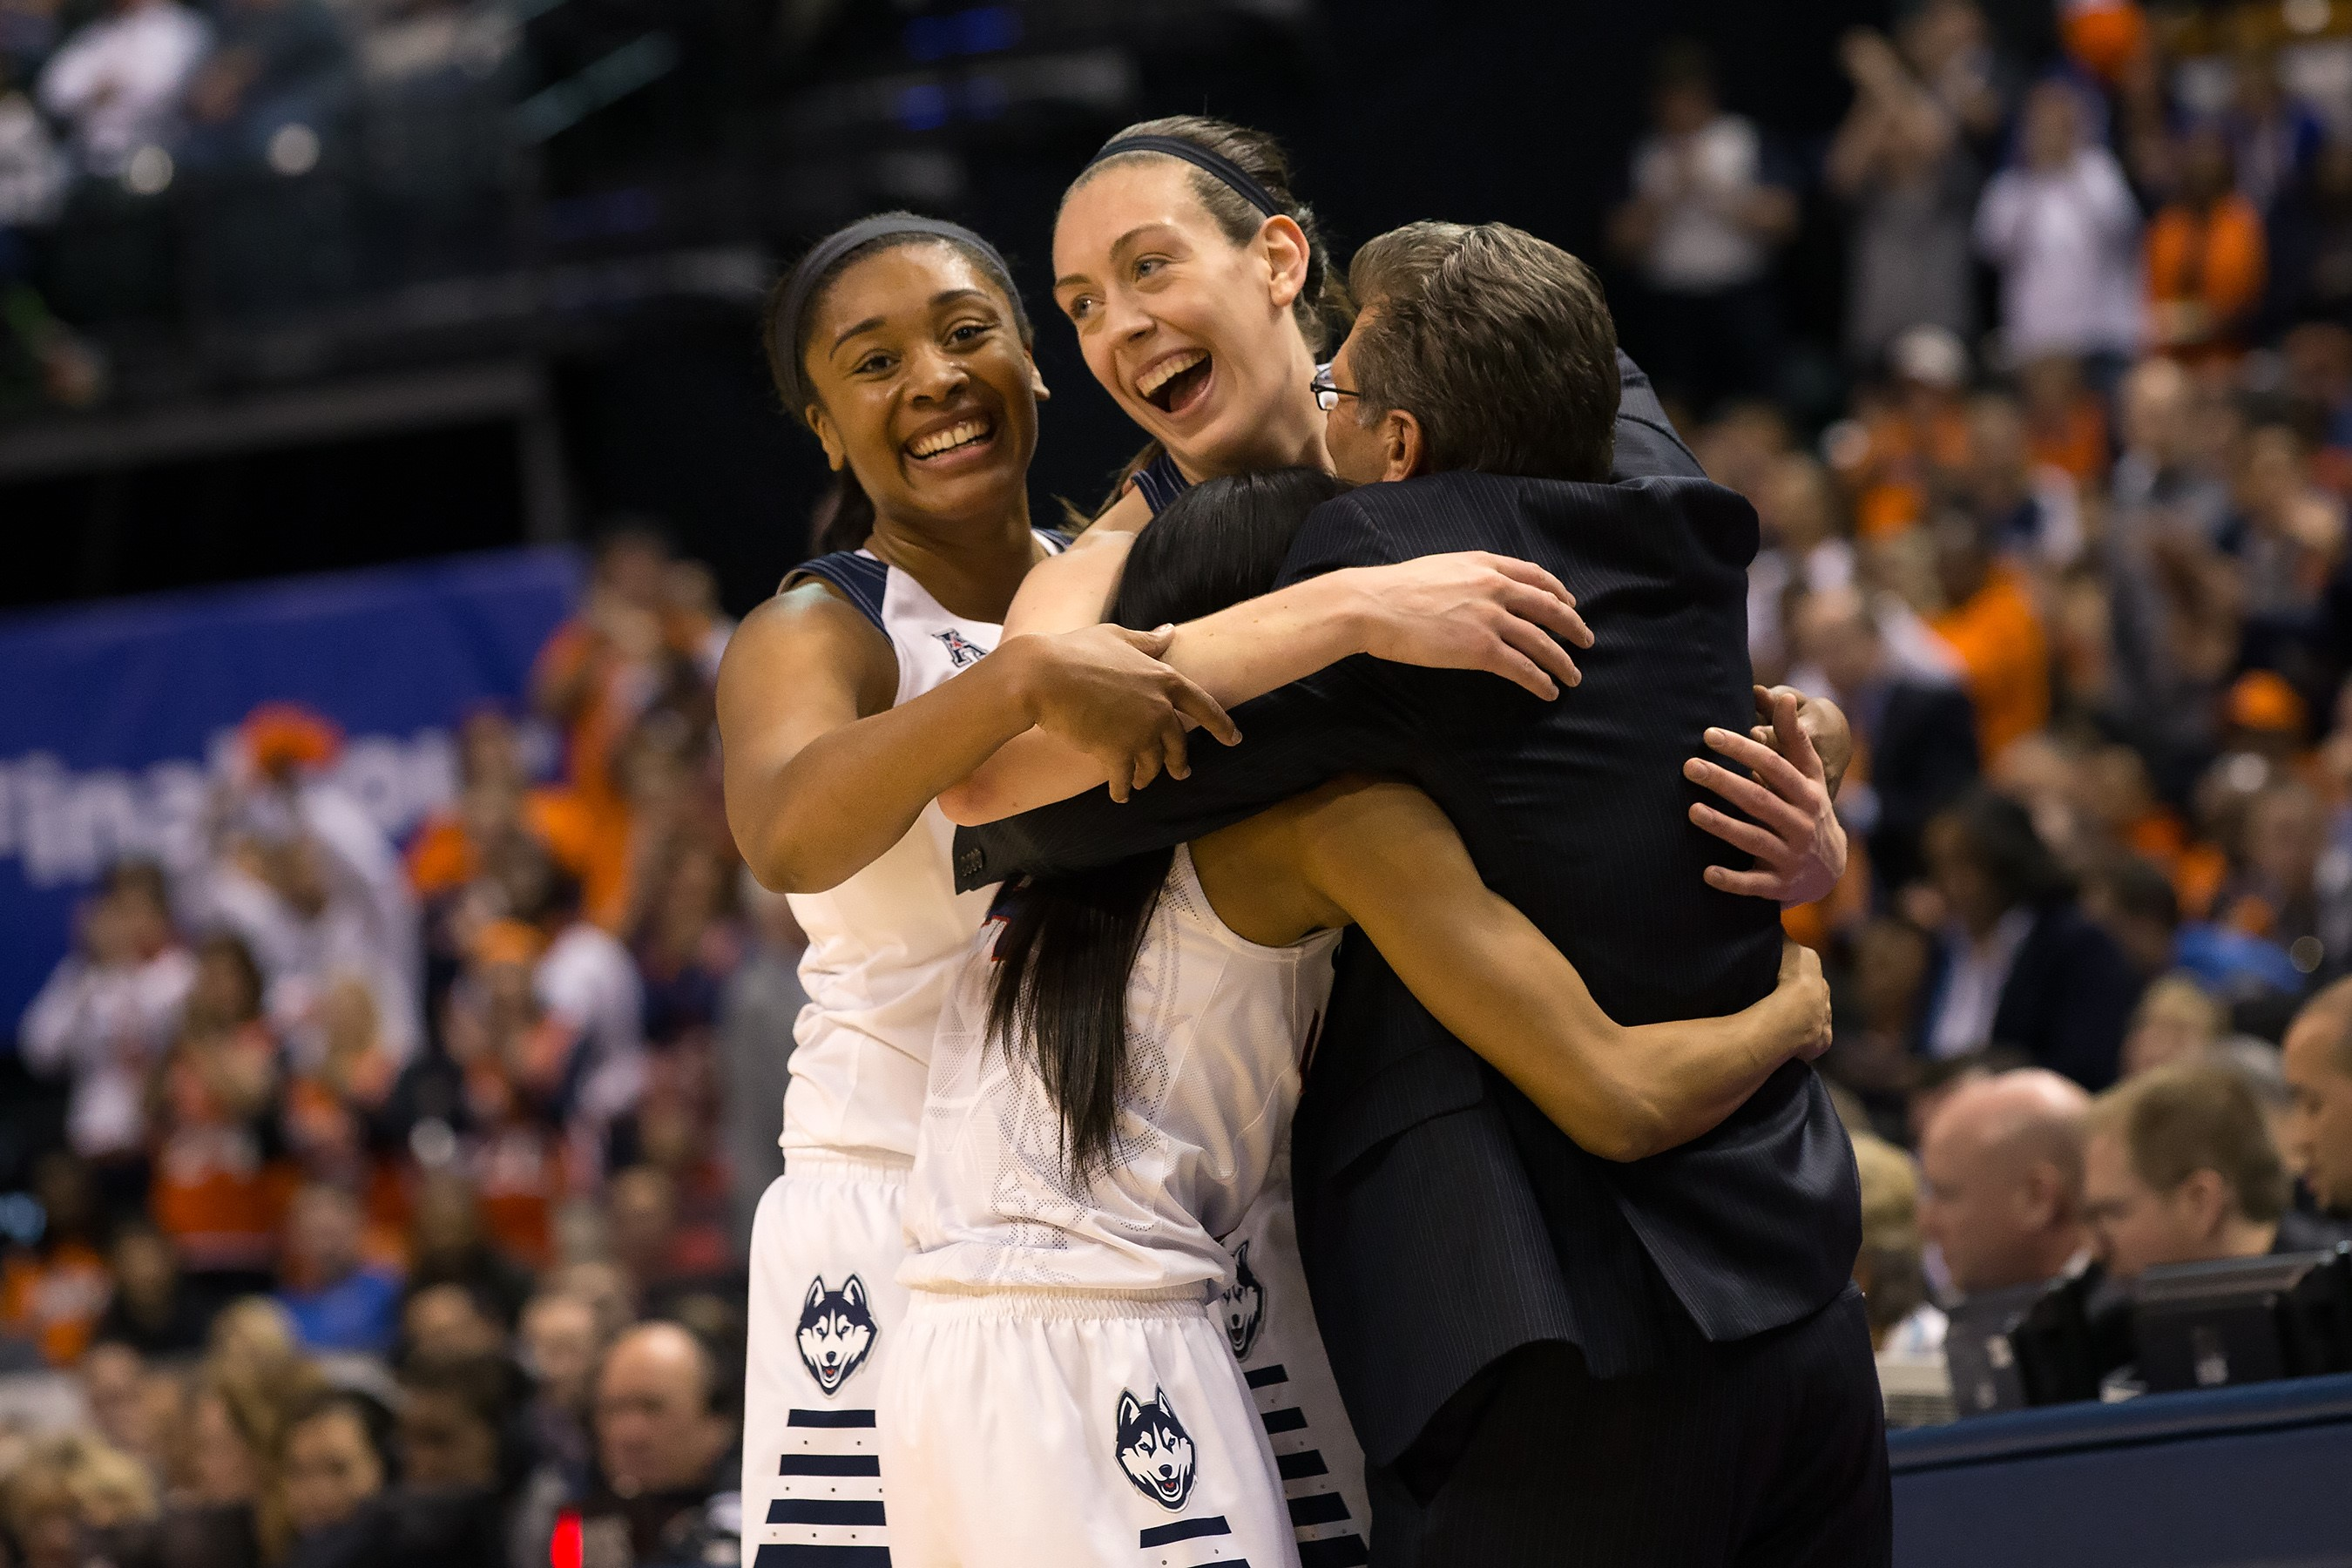 Seniors Morgan Tuck, Breanna Stewart, and Moriah Jefferson celebrate their fourth national title in a row with head coach Geno Auriemma. (Stephen Slade '89 (SFA) for UConn)